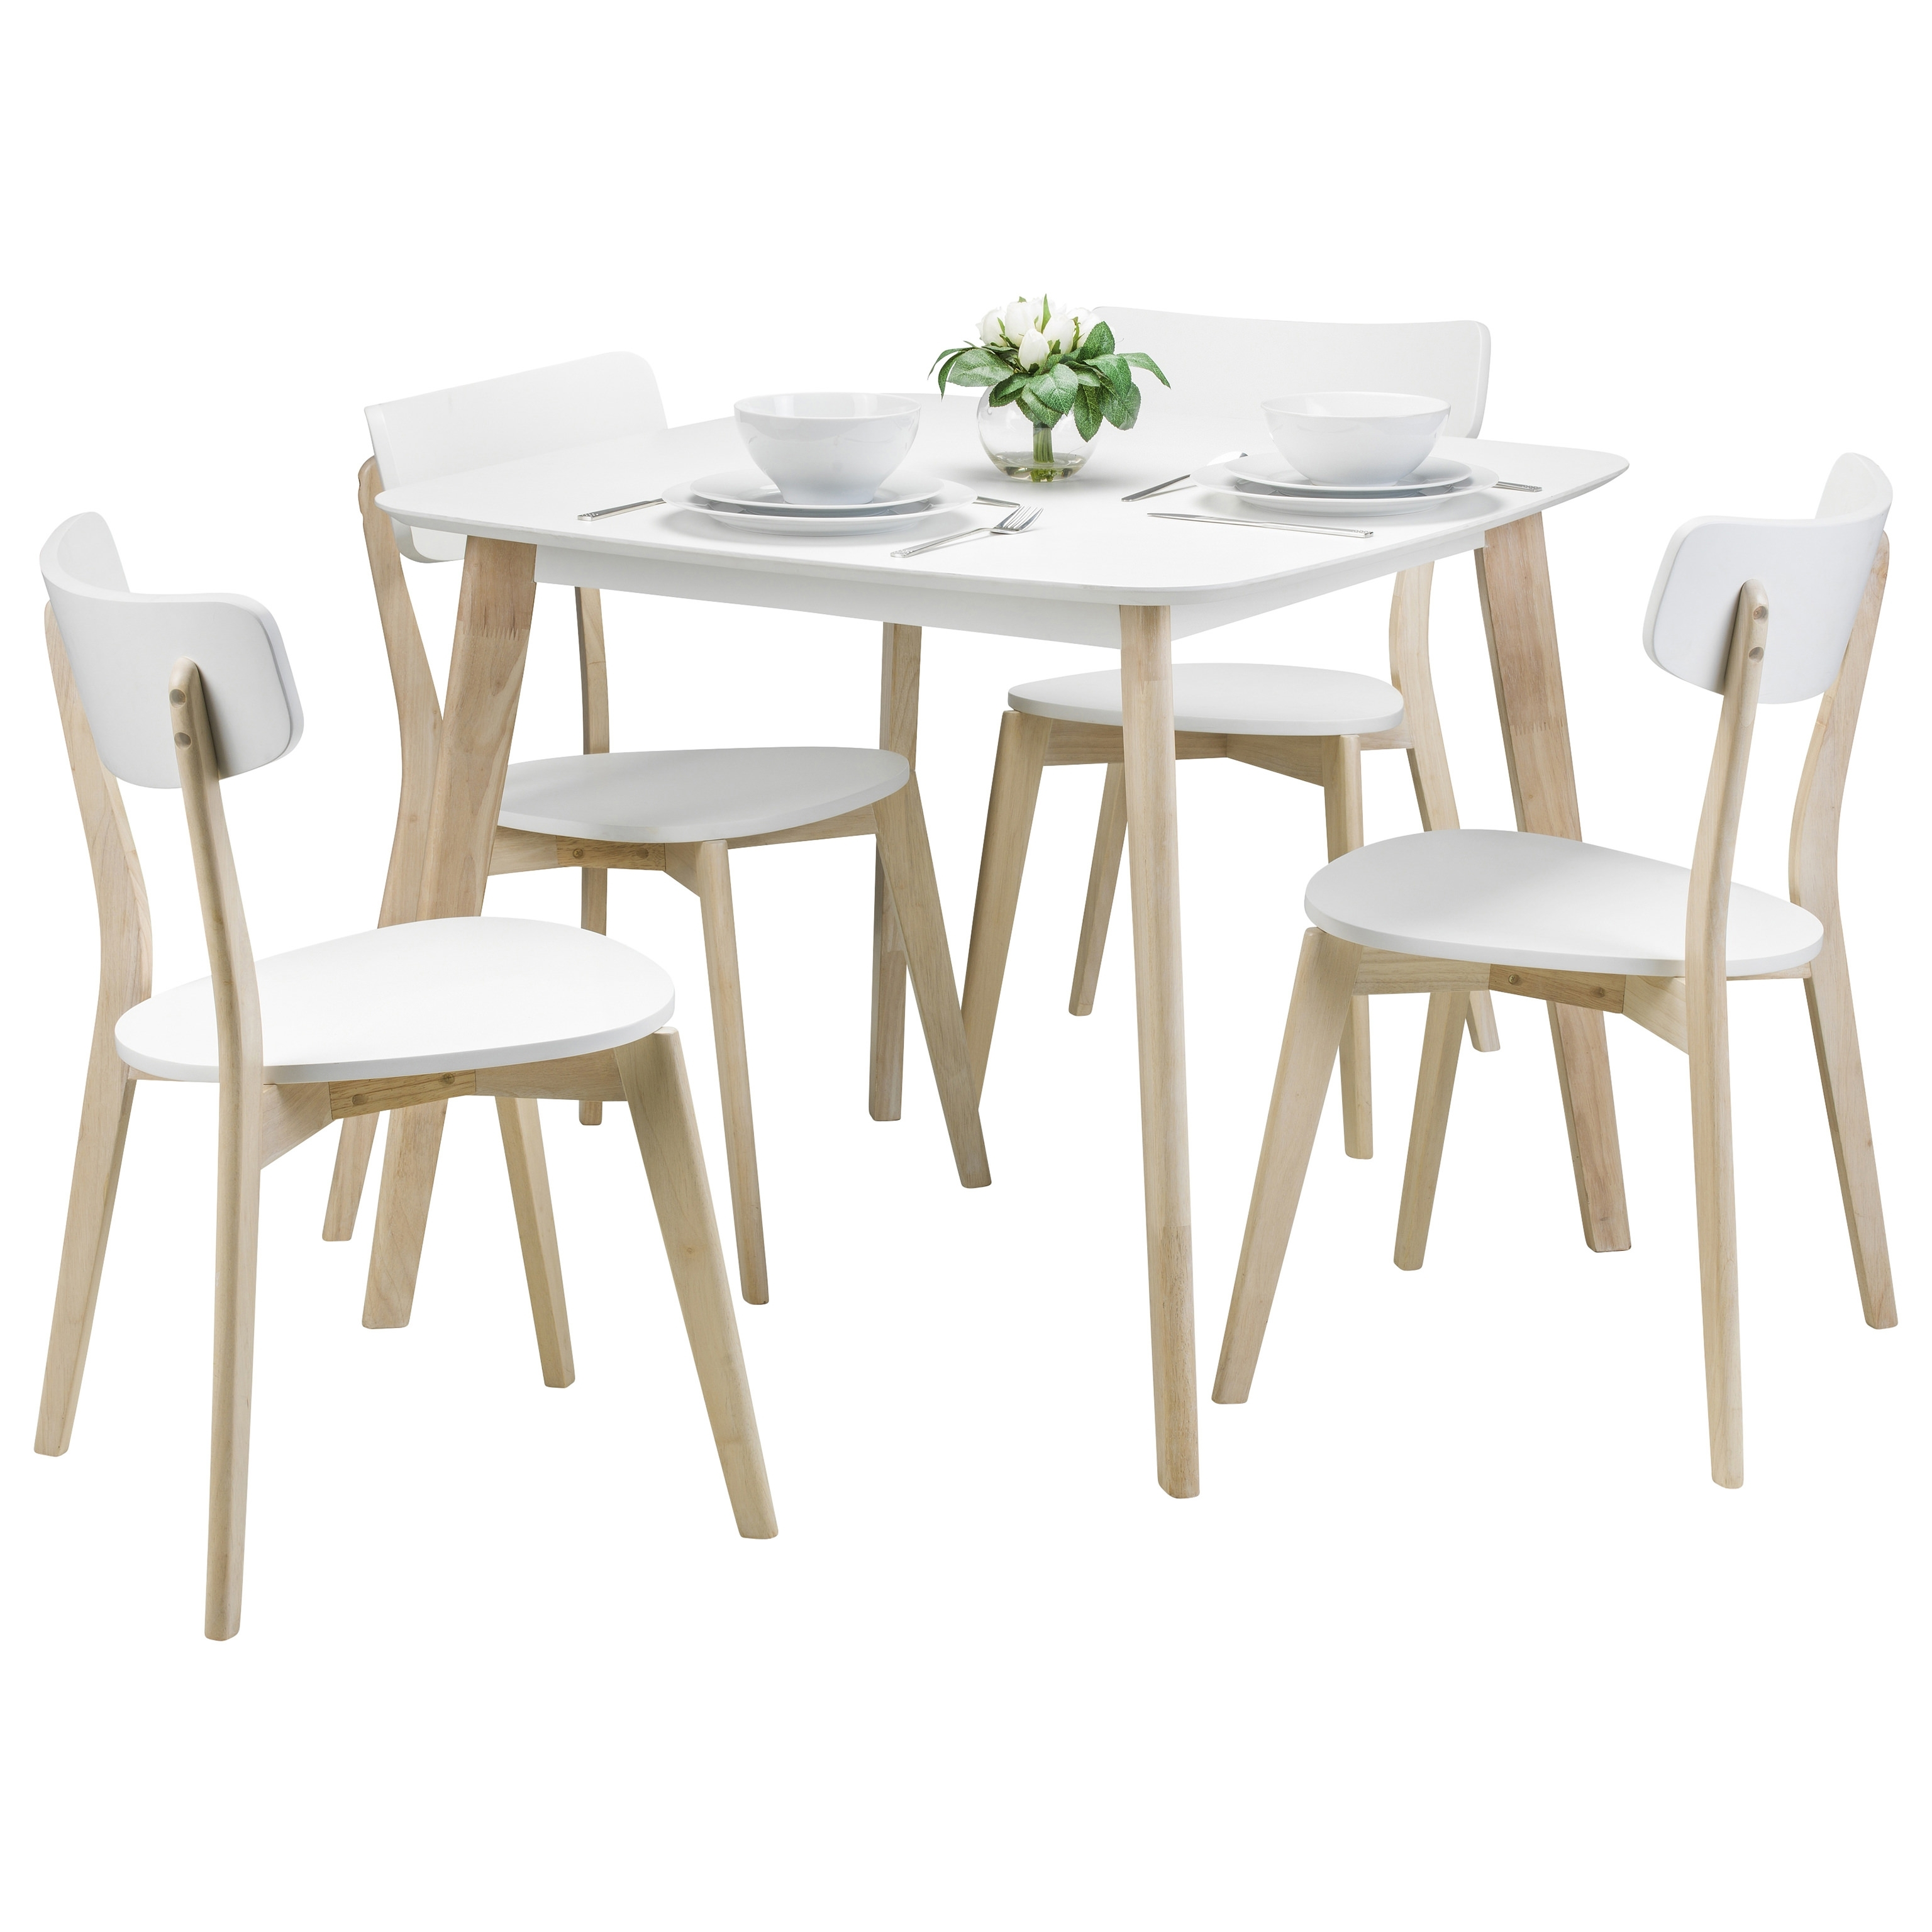 Latest White Finish & Limed Oak Effect Square Dining Table And Chair Set Regarding Square Oak Dining Tables (View 7 of 25)